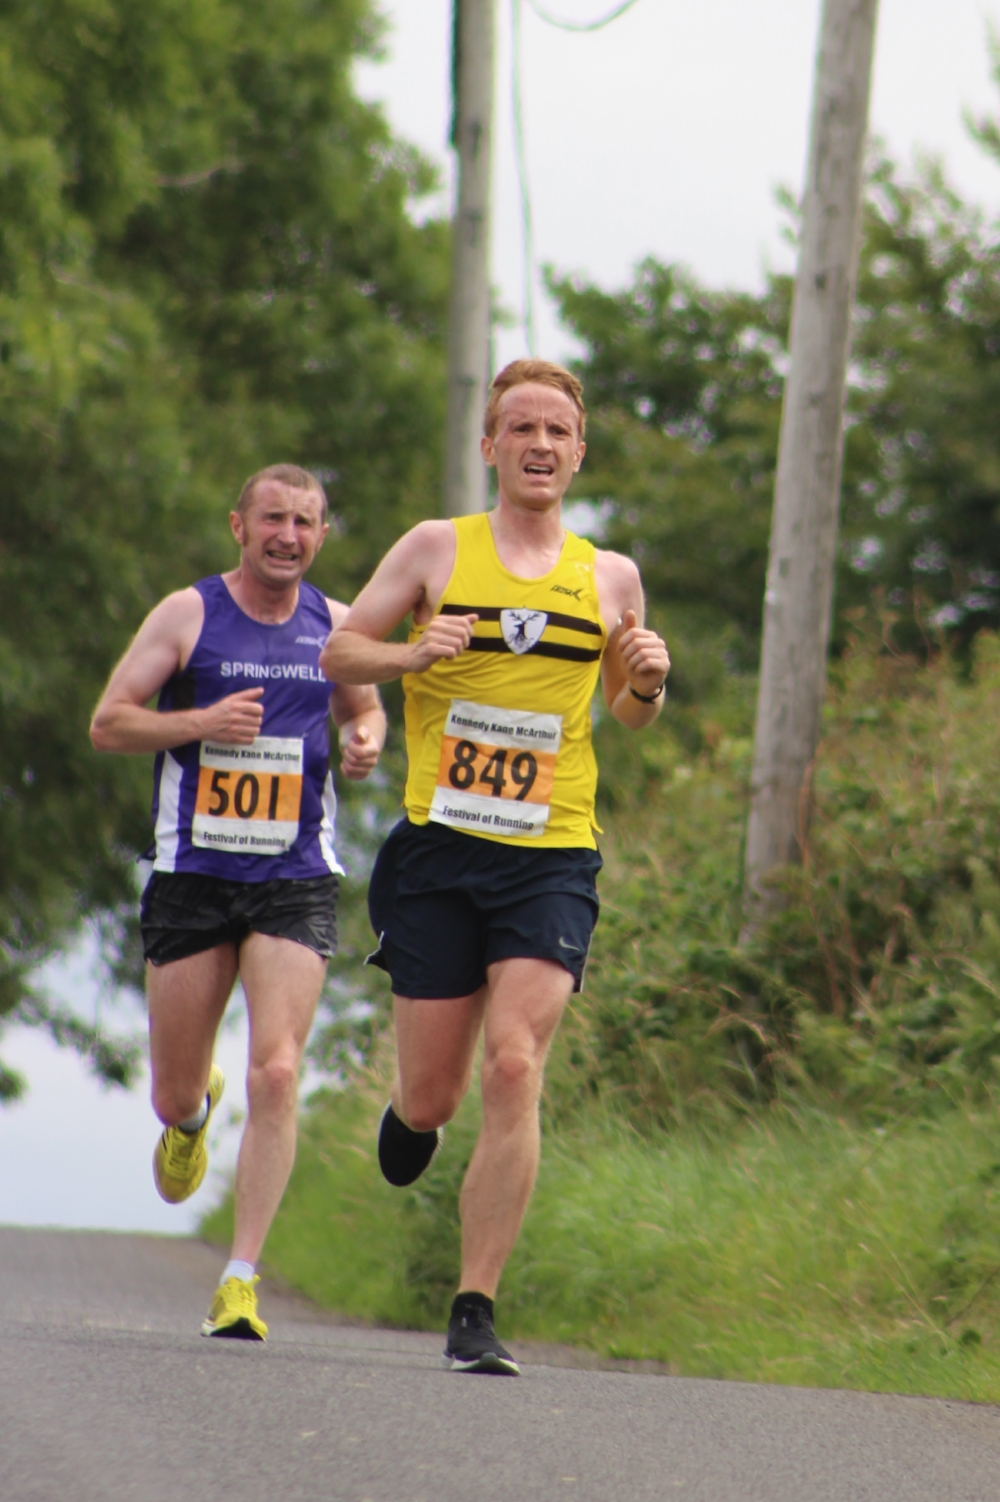 Paul Thompson (Springwell RC) and Colin Willetts (North Belfast Harriers) at the KKMcA Half Marathon